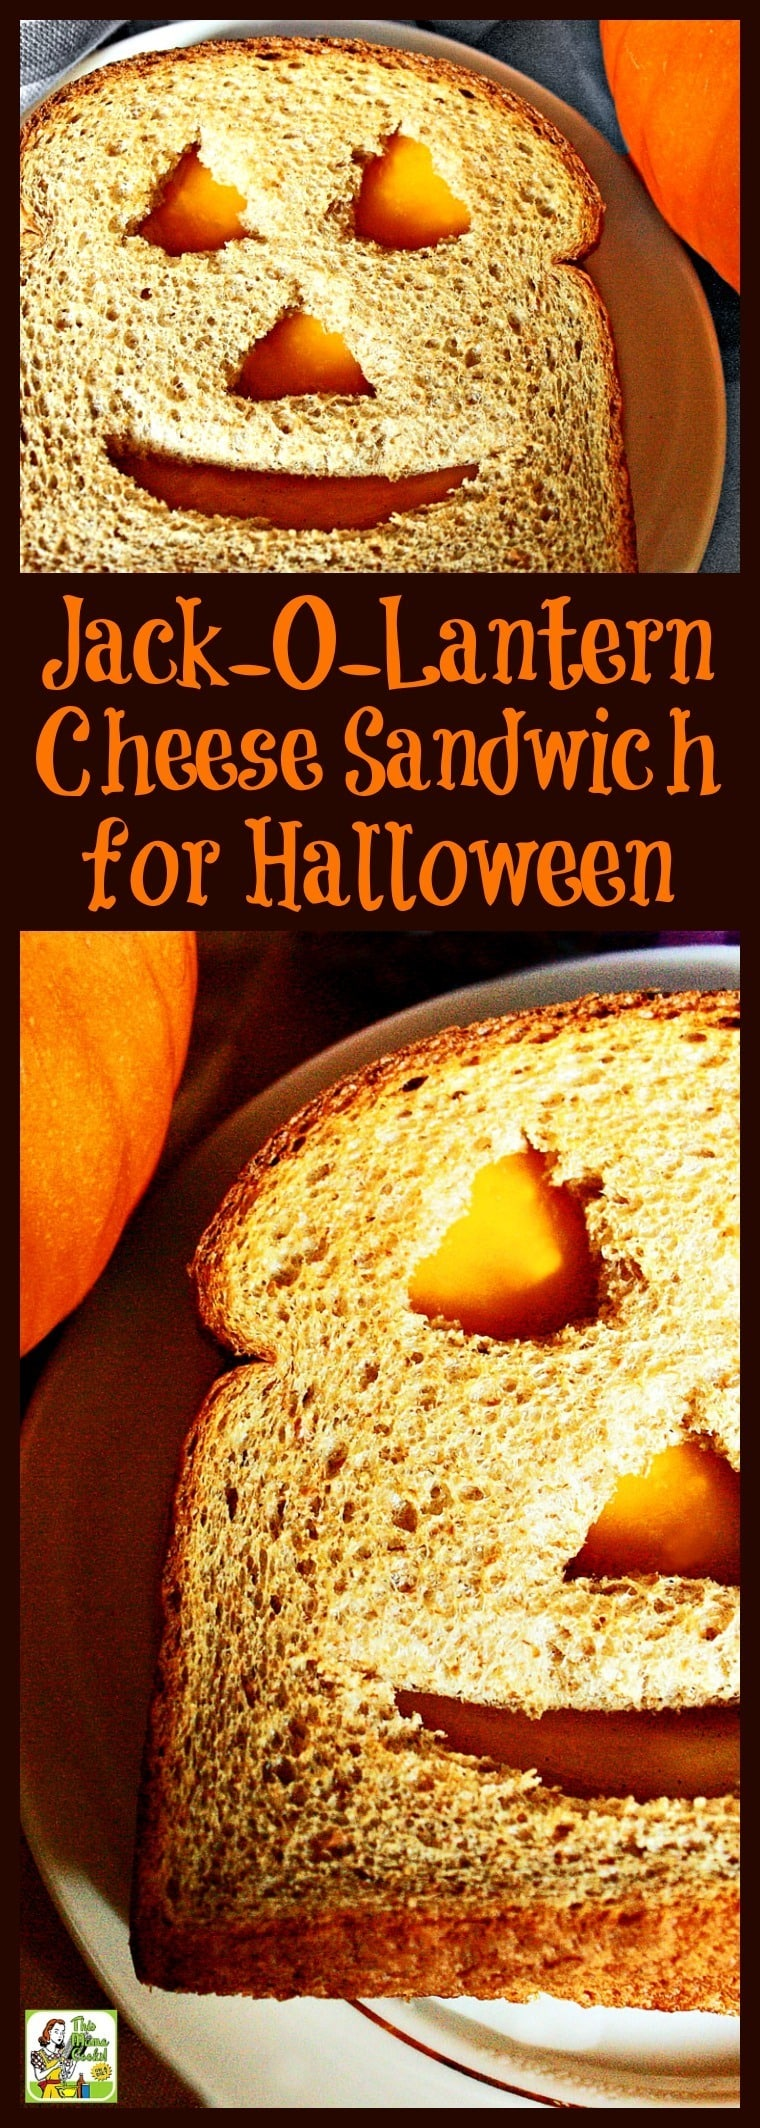 Need Halloween sandwich ideas kids love? This Jack-O-Lantern Cheese Sandwich for Halloween recipe is a healthy cheese sandwich for Halloween kids parties. So easy to make that the kids can make this fun and healthy Halloween recipe themselves! Can be made gluten free. #recipe #easy #recipeoftheday #healthyrecipes #glutenfree #easyrecipes #Halloween #snack #snacks #cheese #kids #kidfriendly #sandwiches